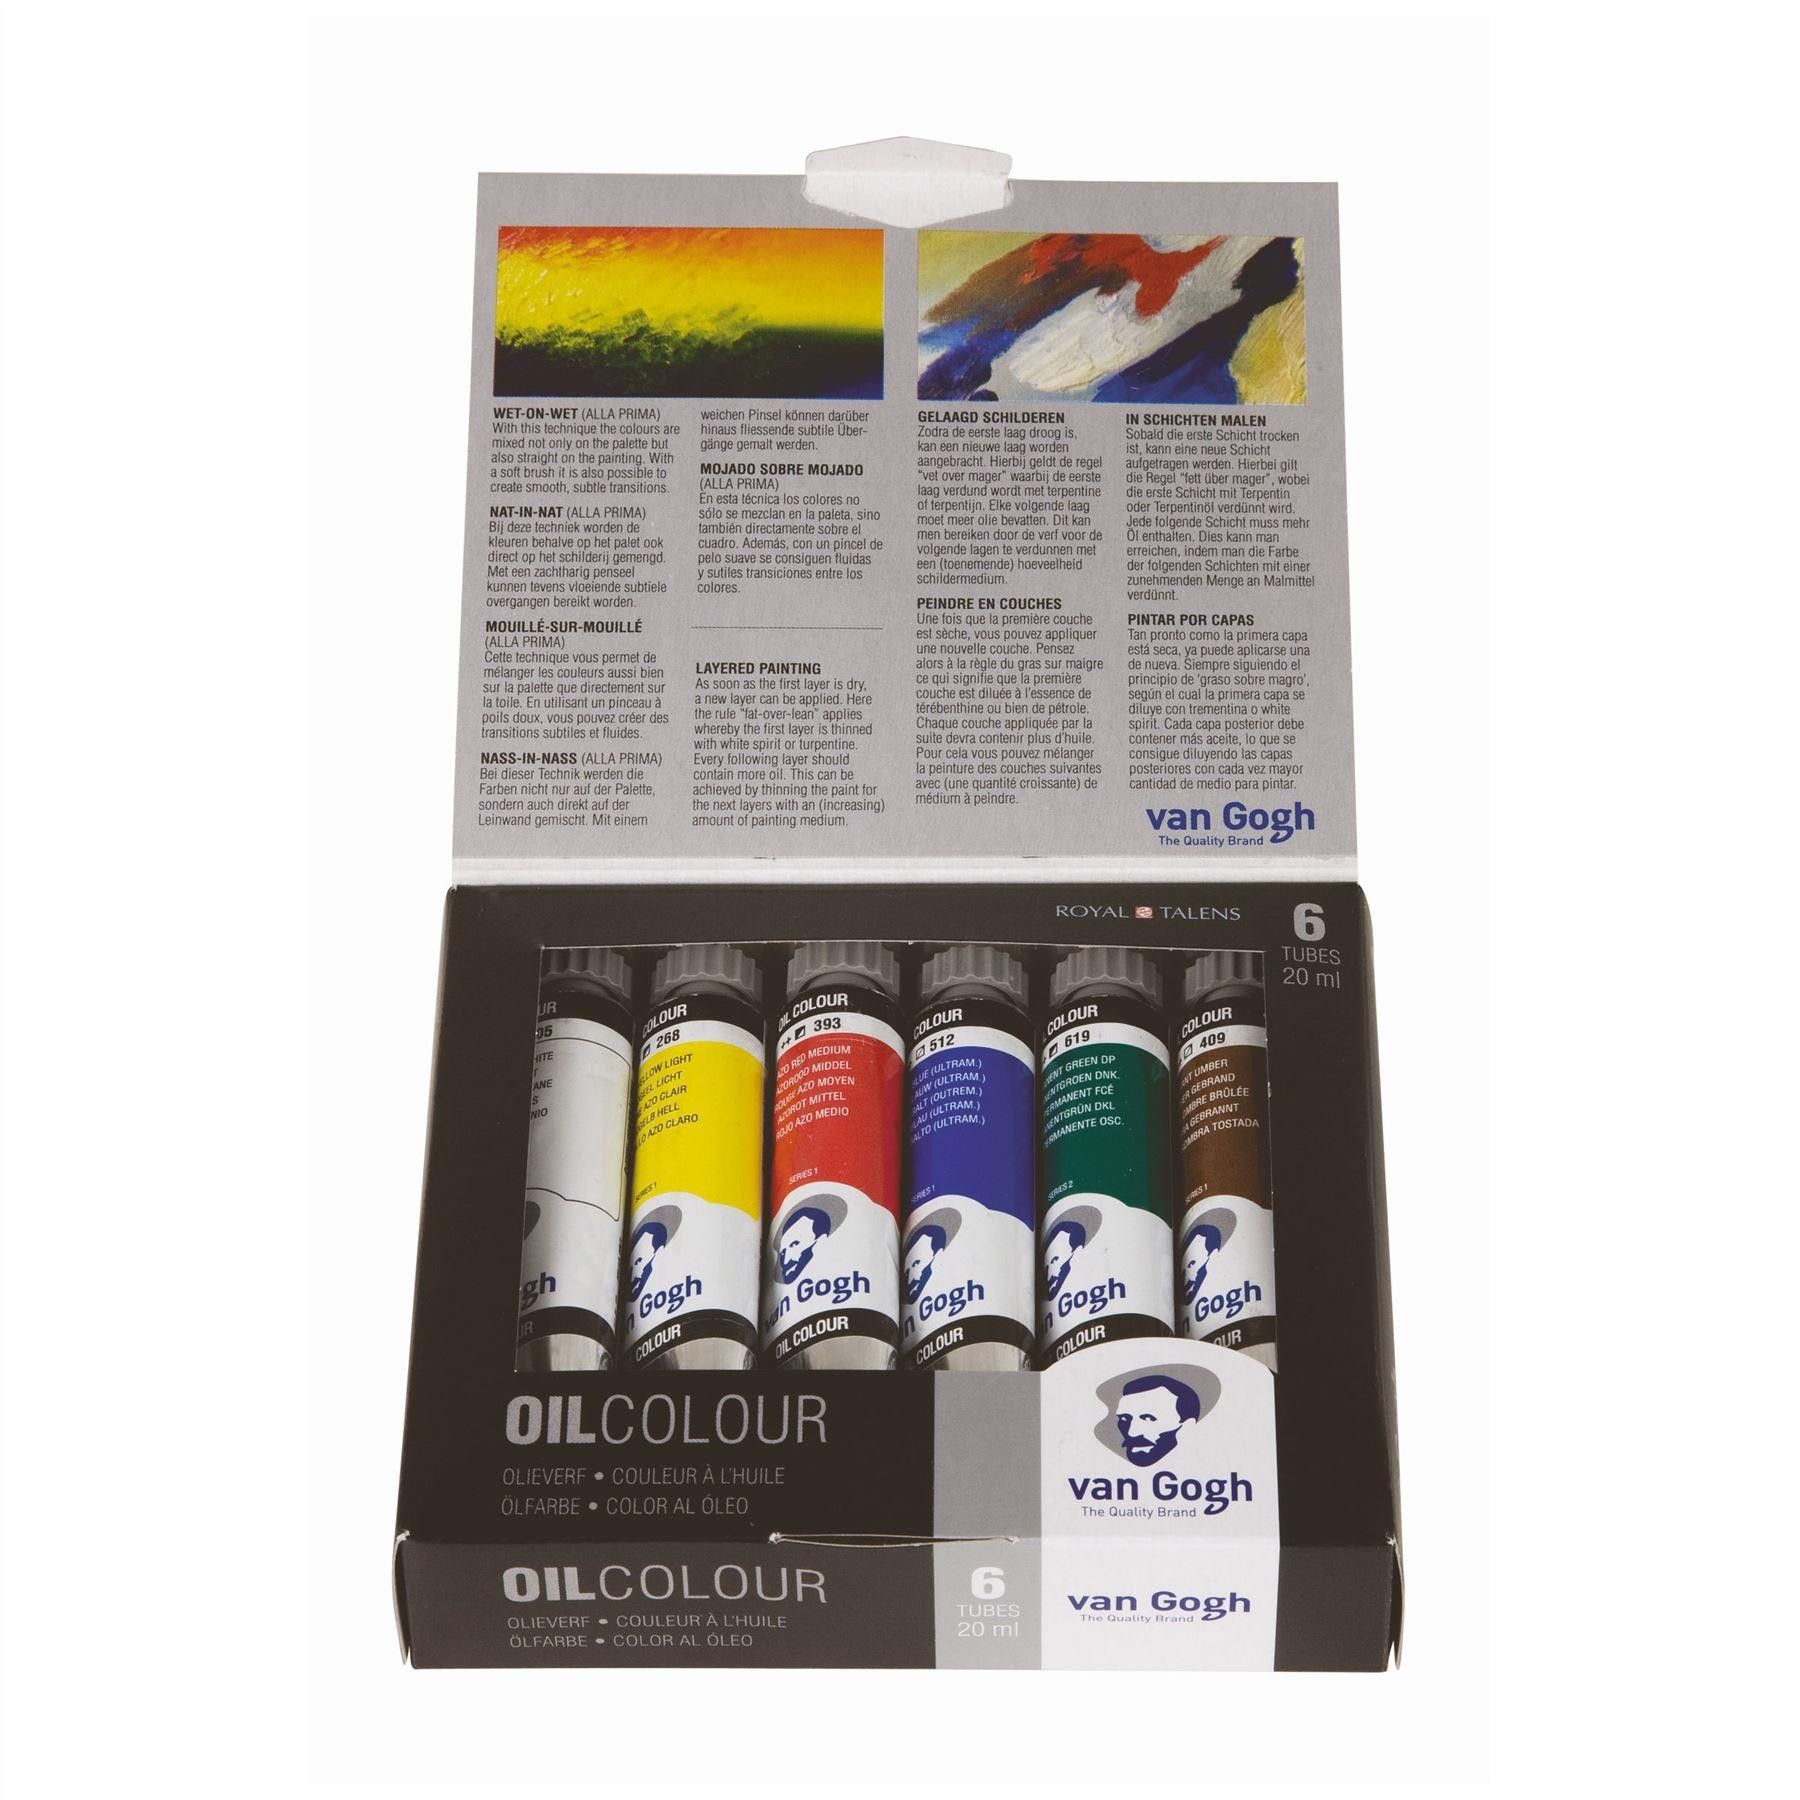 Royal Talens Van Gogh Oil Colour Paint Sets Accessories Packs